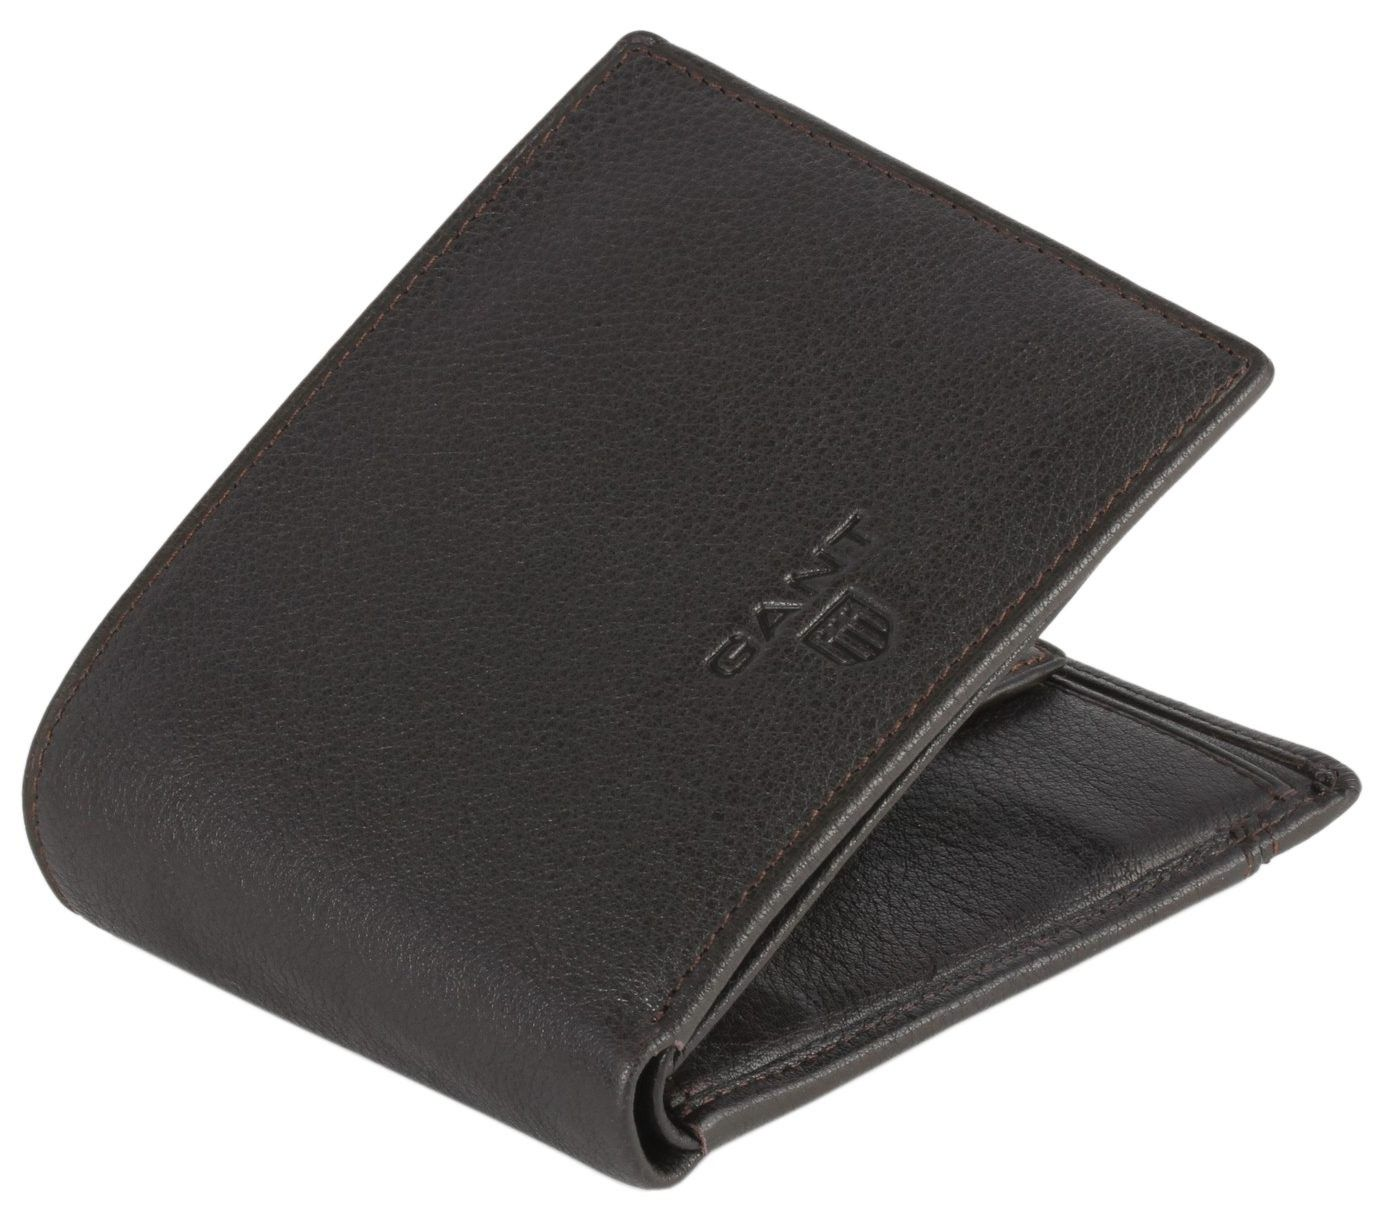 27a918c5b8 Gant Wallet - Brown Leather 2 Folded Wallet #Gant #Mens #Wallet ...